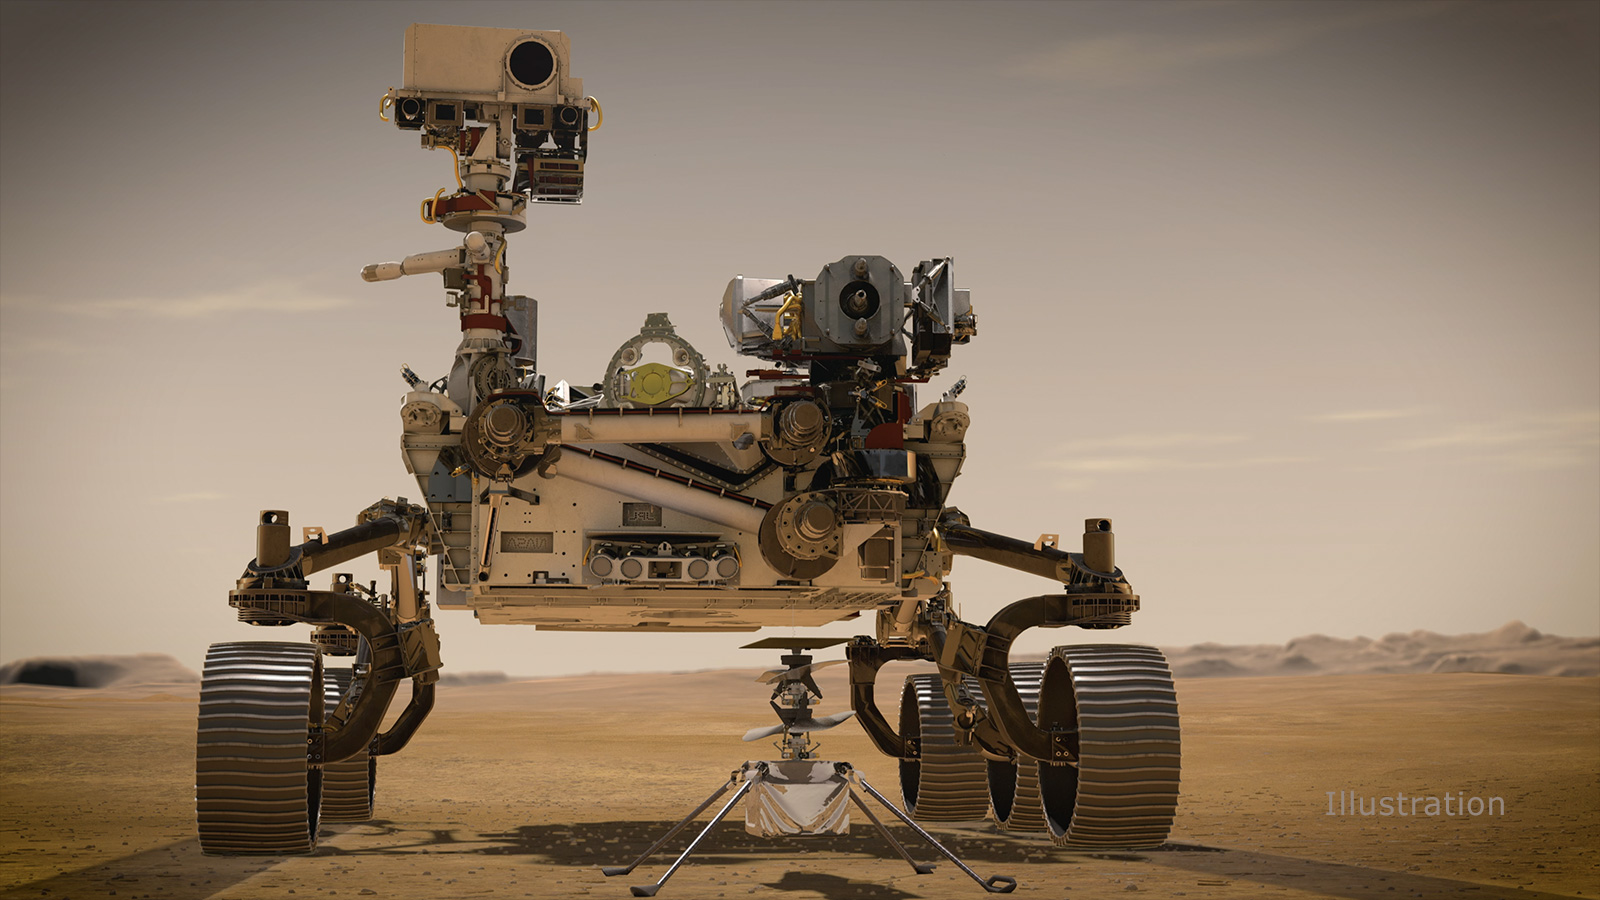 Perseverance is the fifth and by far most sophisticated rover vehicle Nasa has sent to Mars since Sojourner in 1997